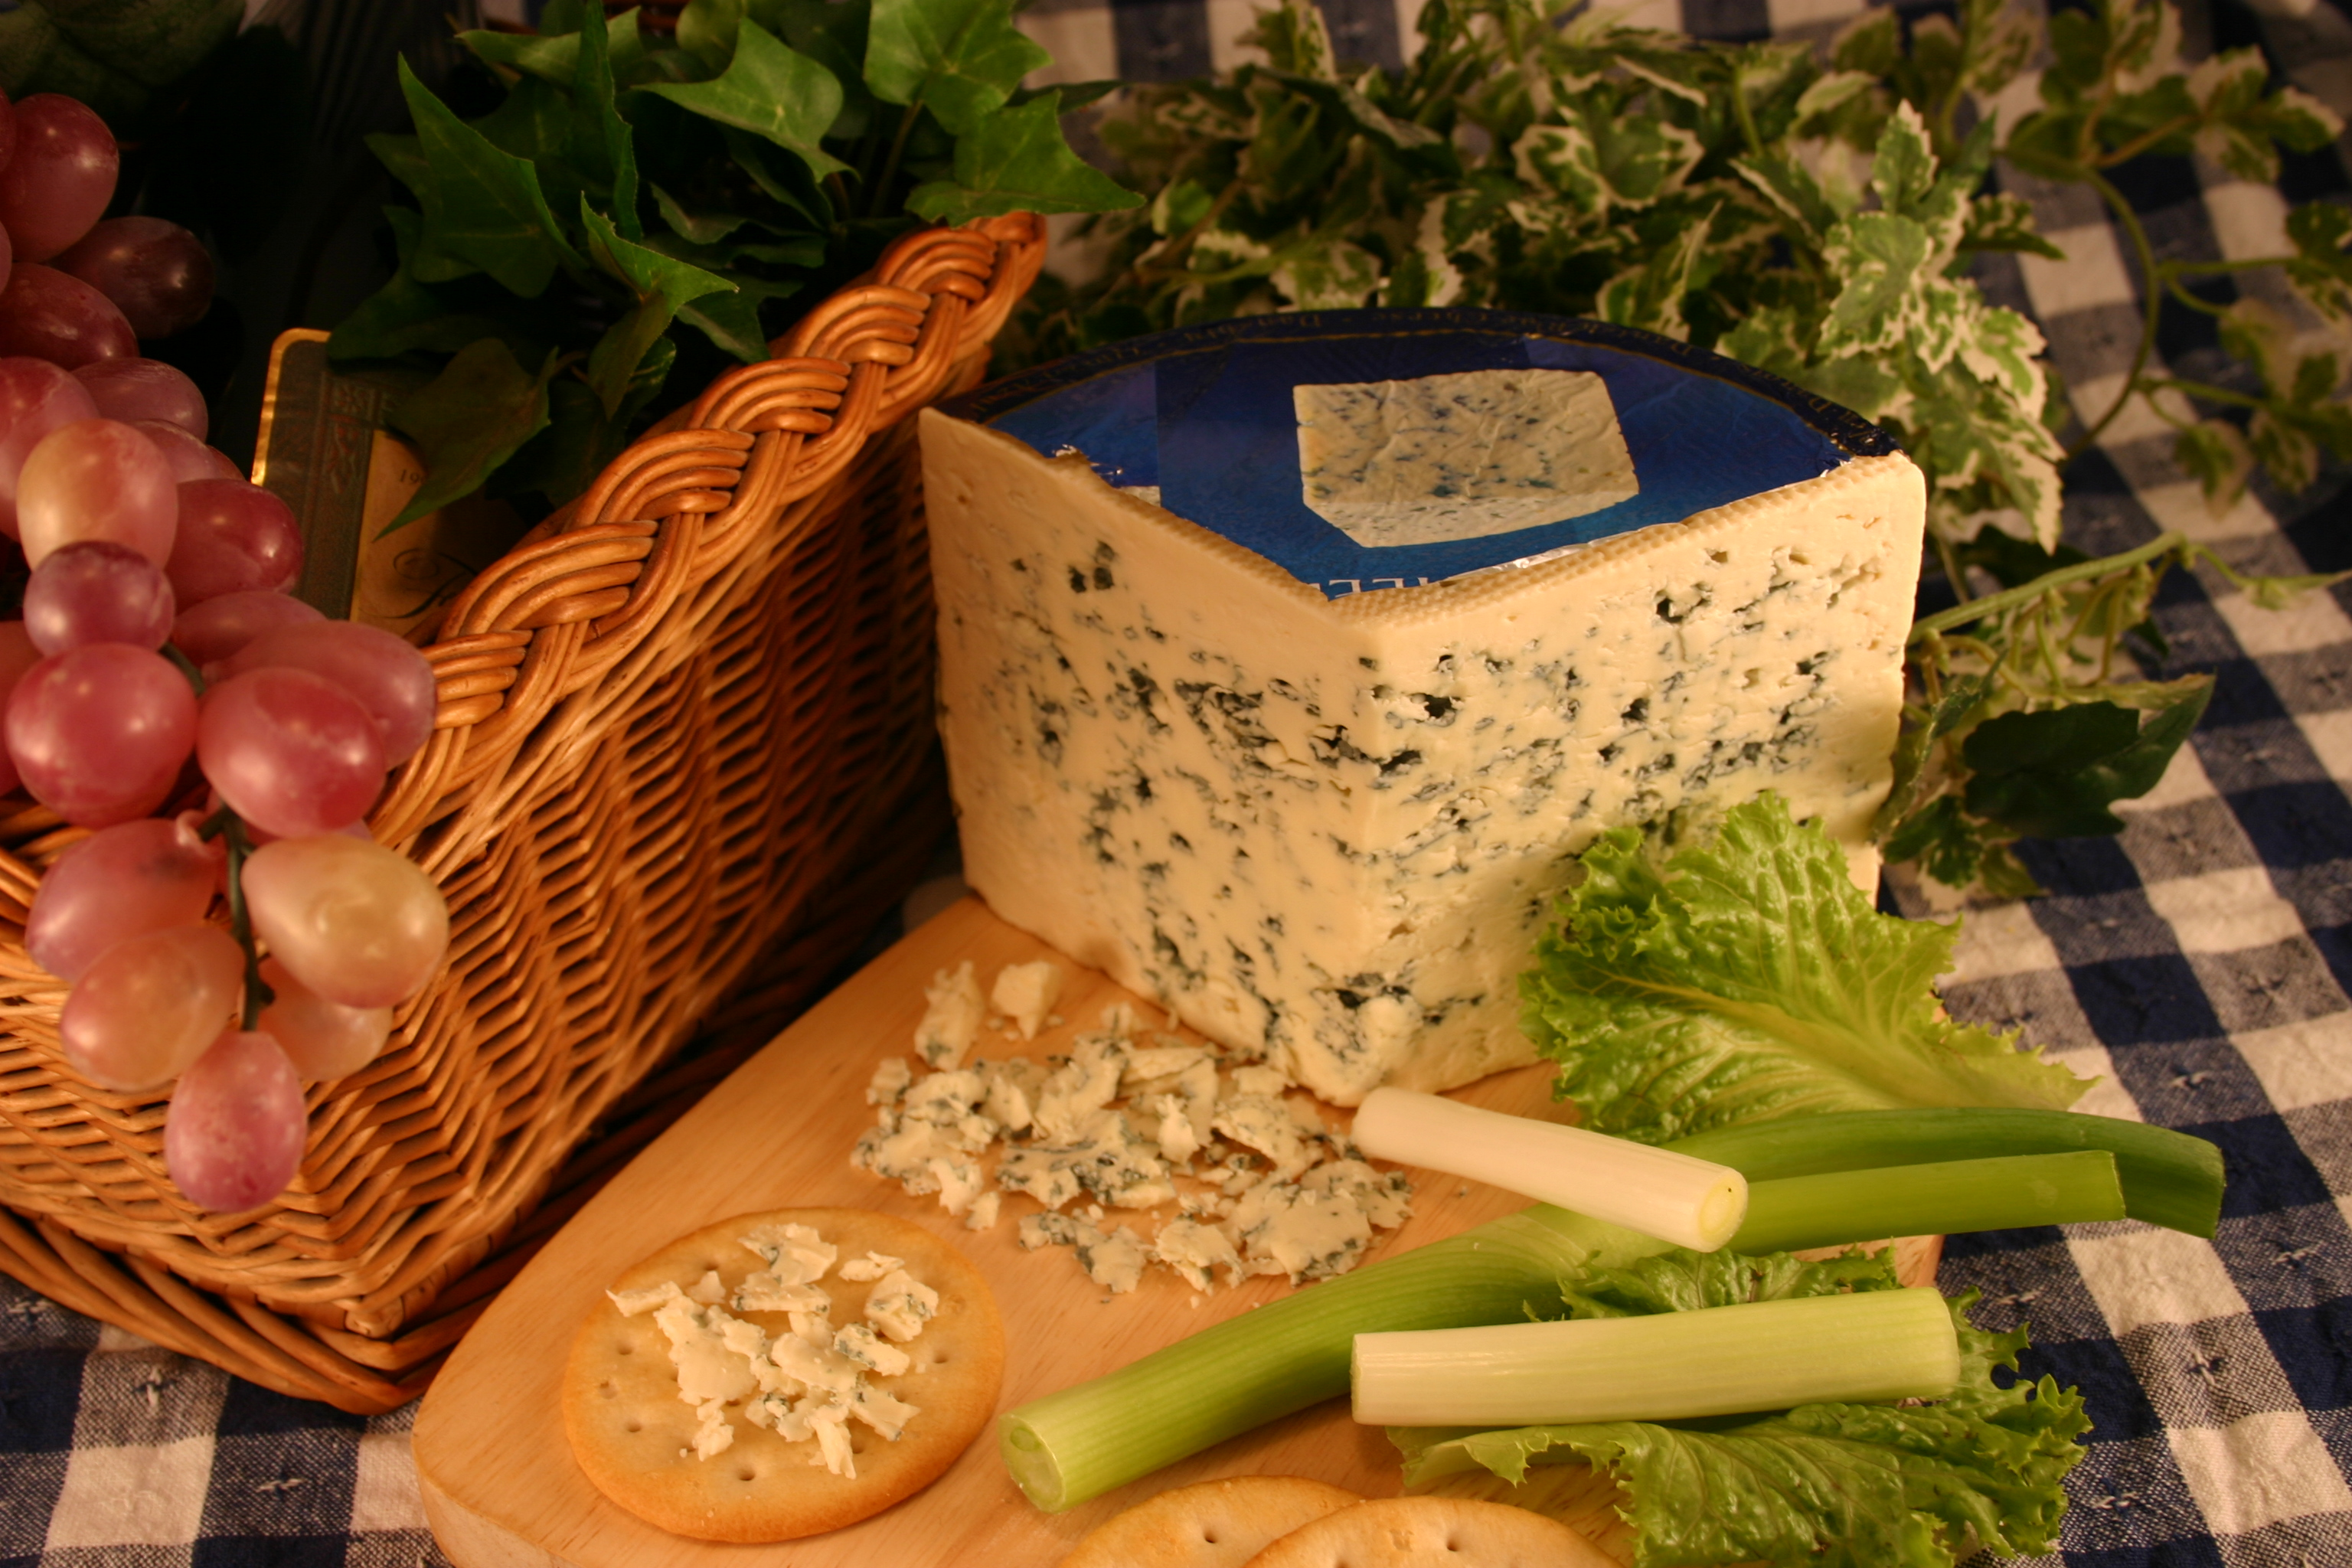 Danish Blue Cheese 006